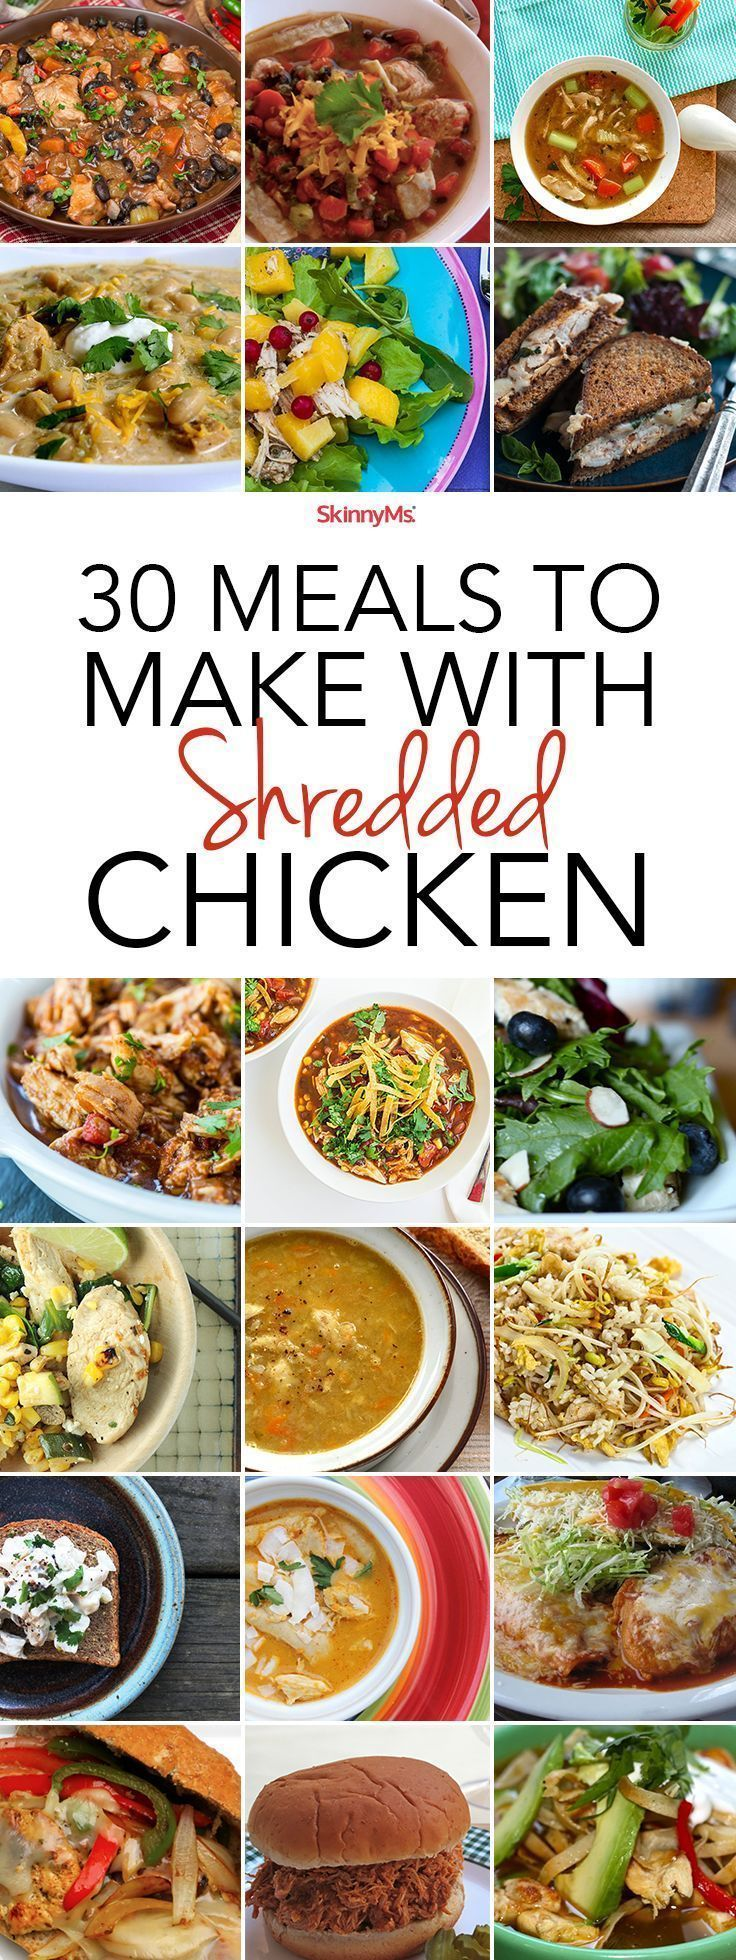 Never run out of ideas again! Try these 30 Meals to Make with Shredded Chicken.